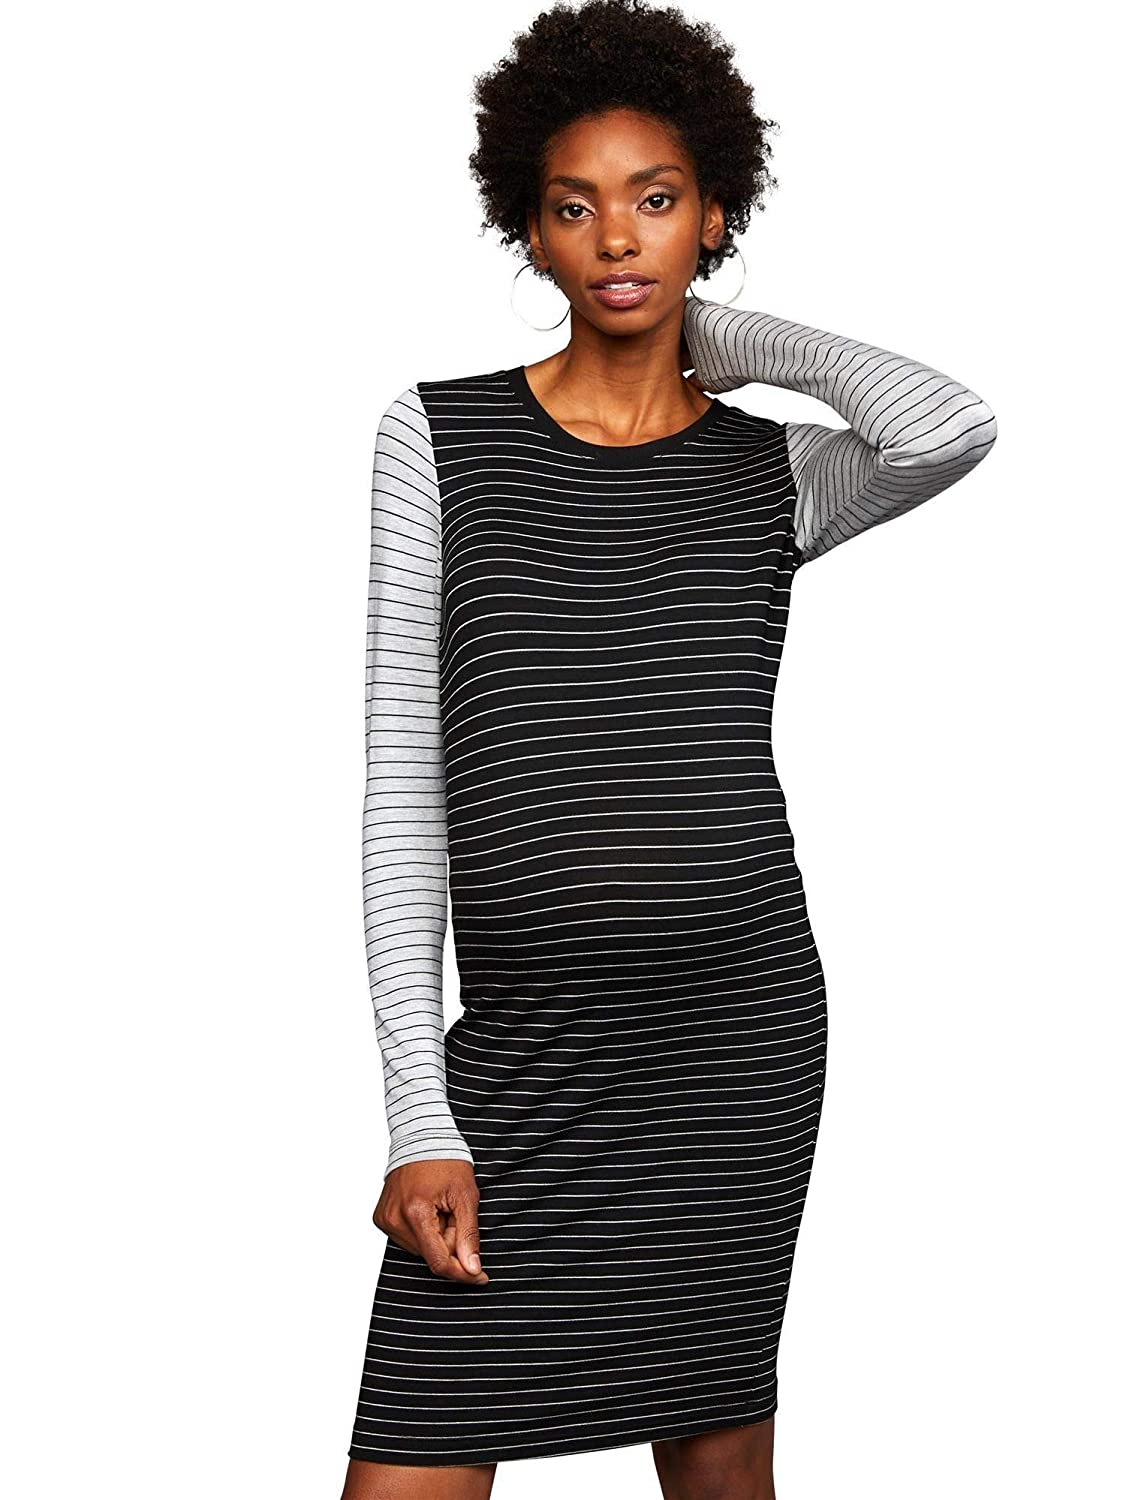 0d2747fb3eec0 A Pea in the Pod Colorblock Maternity Dress at Amazon Women's Clothing  store: